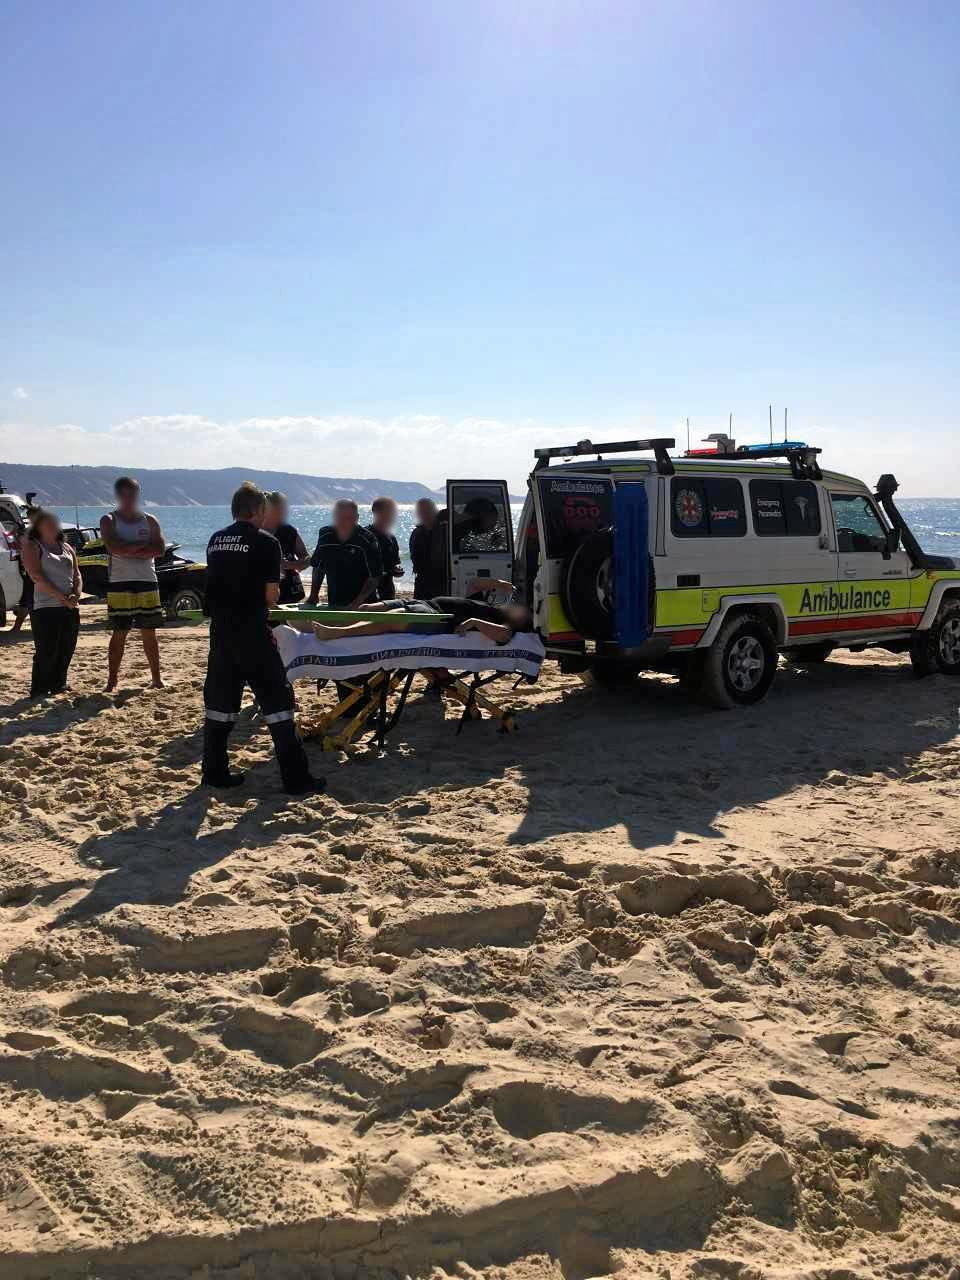 A man has been injured after hitting a freak wave on his jet ski at Double Island Pt.